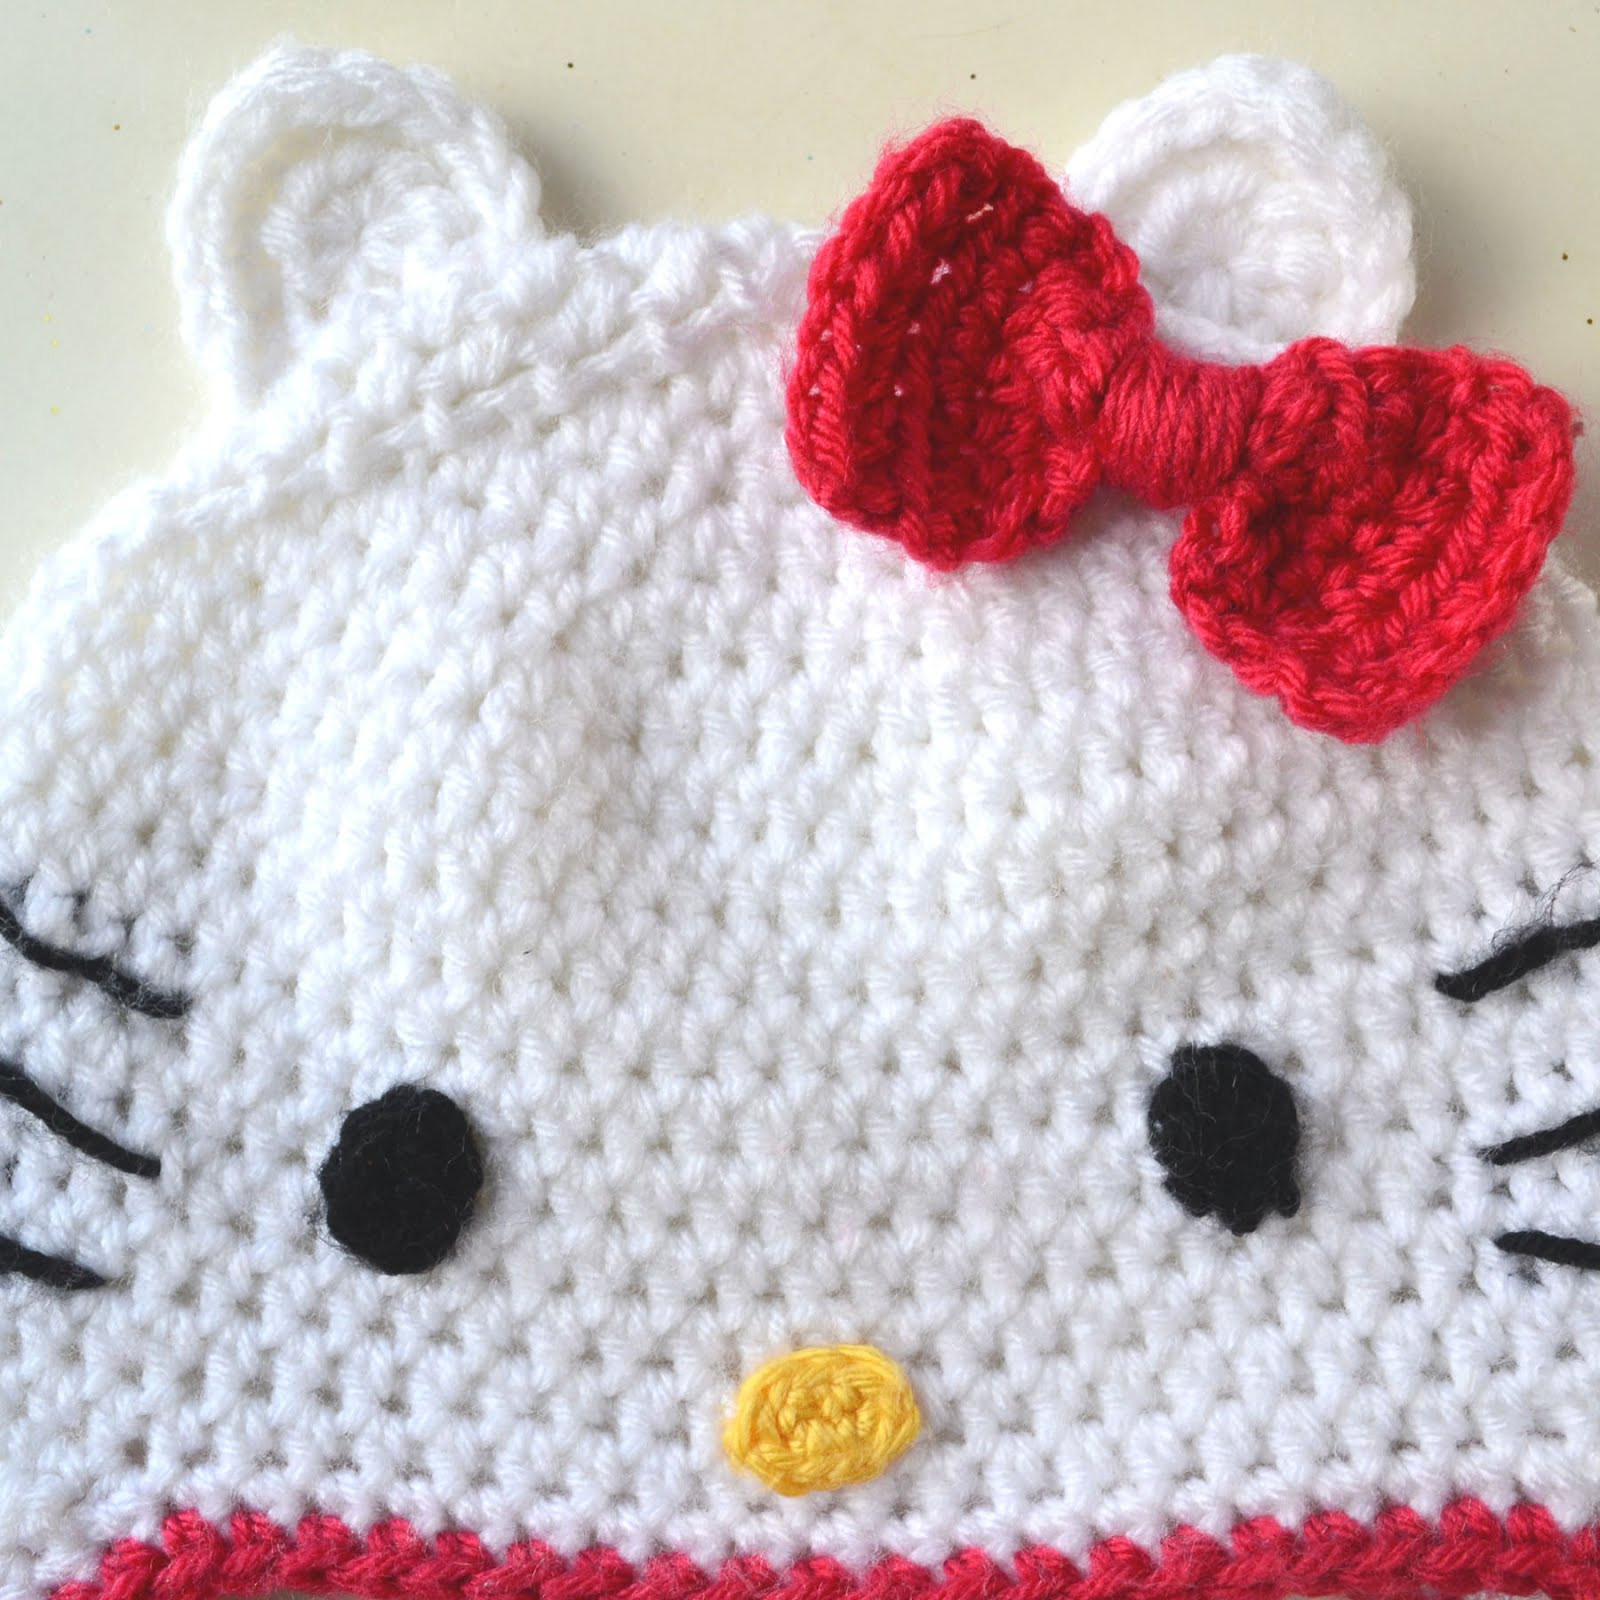 Best Of Crochet In Color Hello Kitty Hat Pattern Hello Kitty Crochet Pattern Of Luxury 47 Images Hello Kitty Crochet Pattern